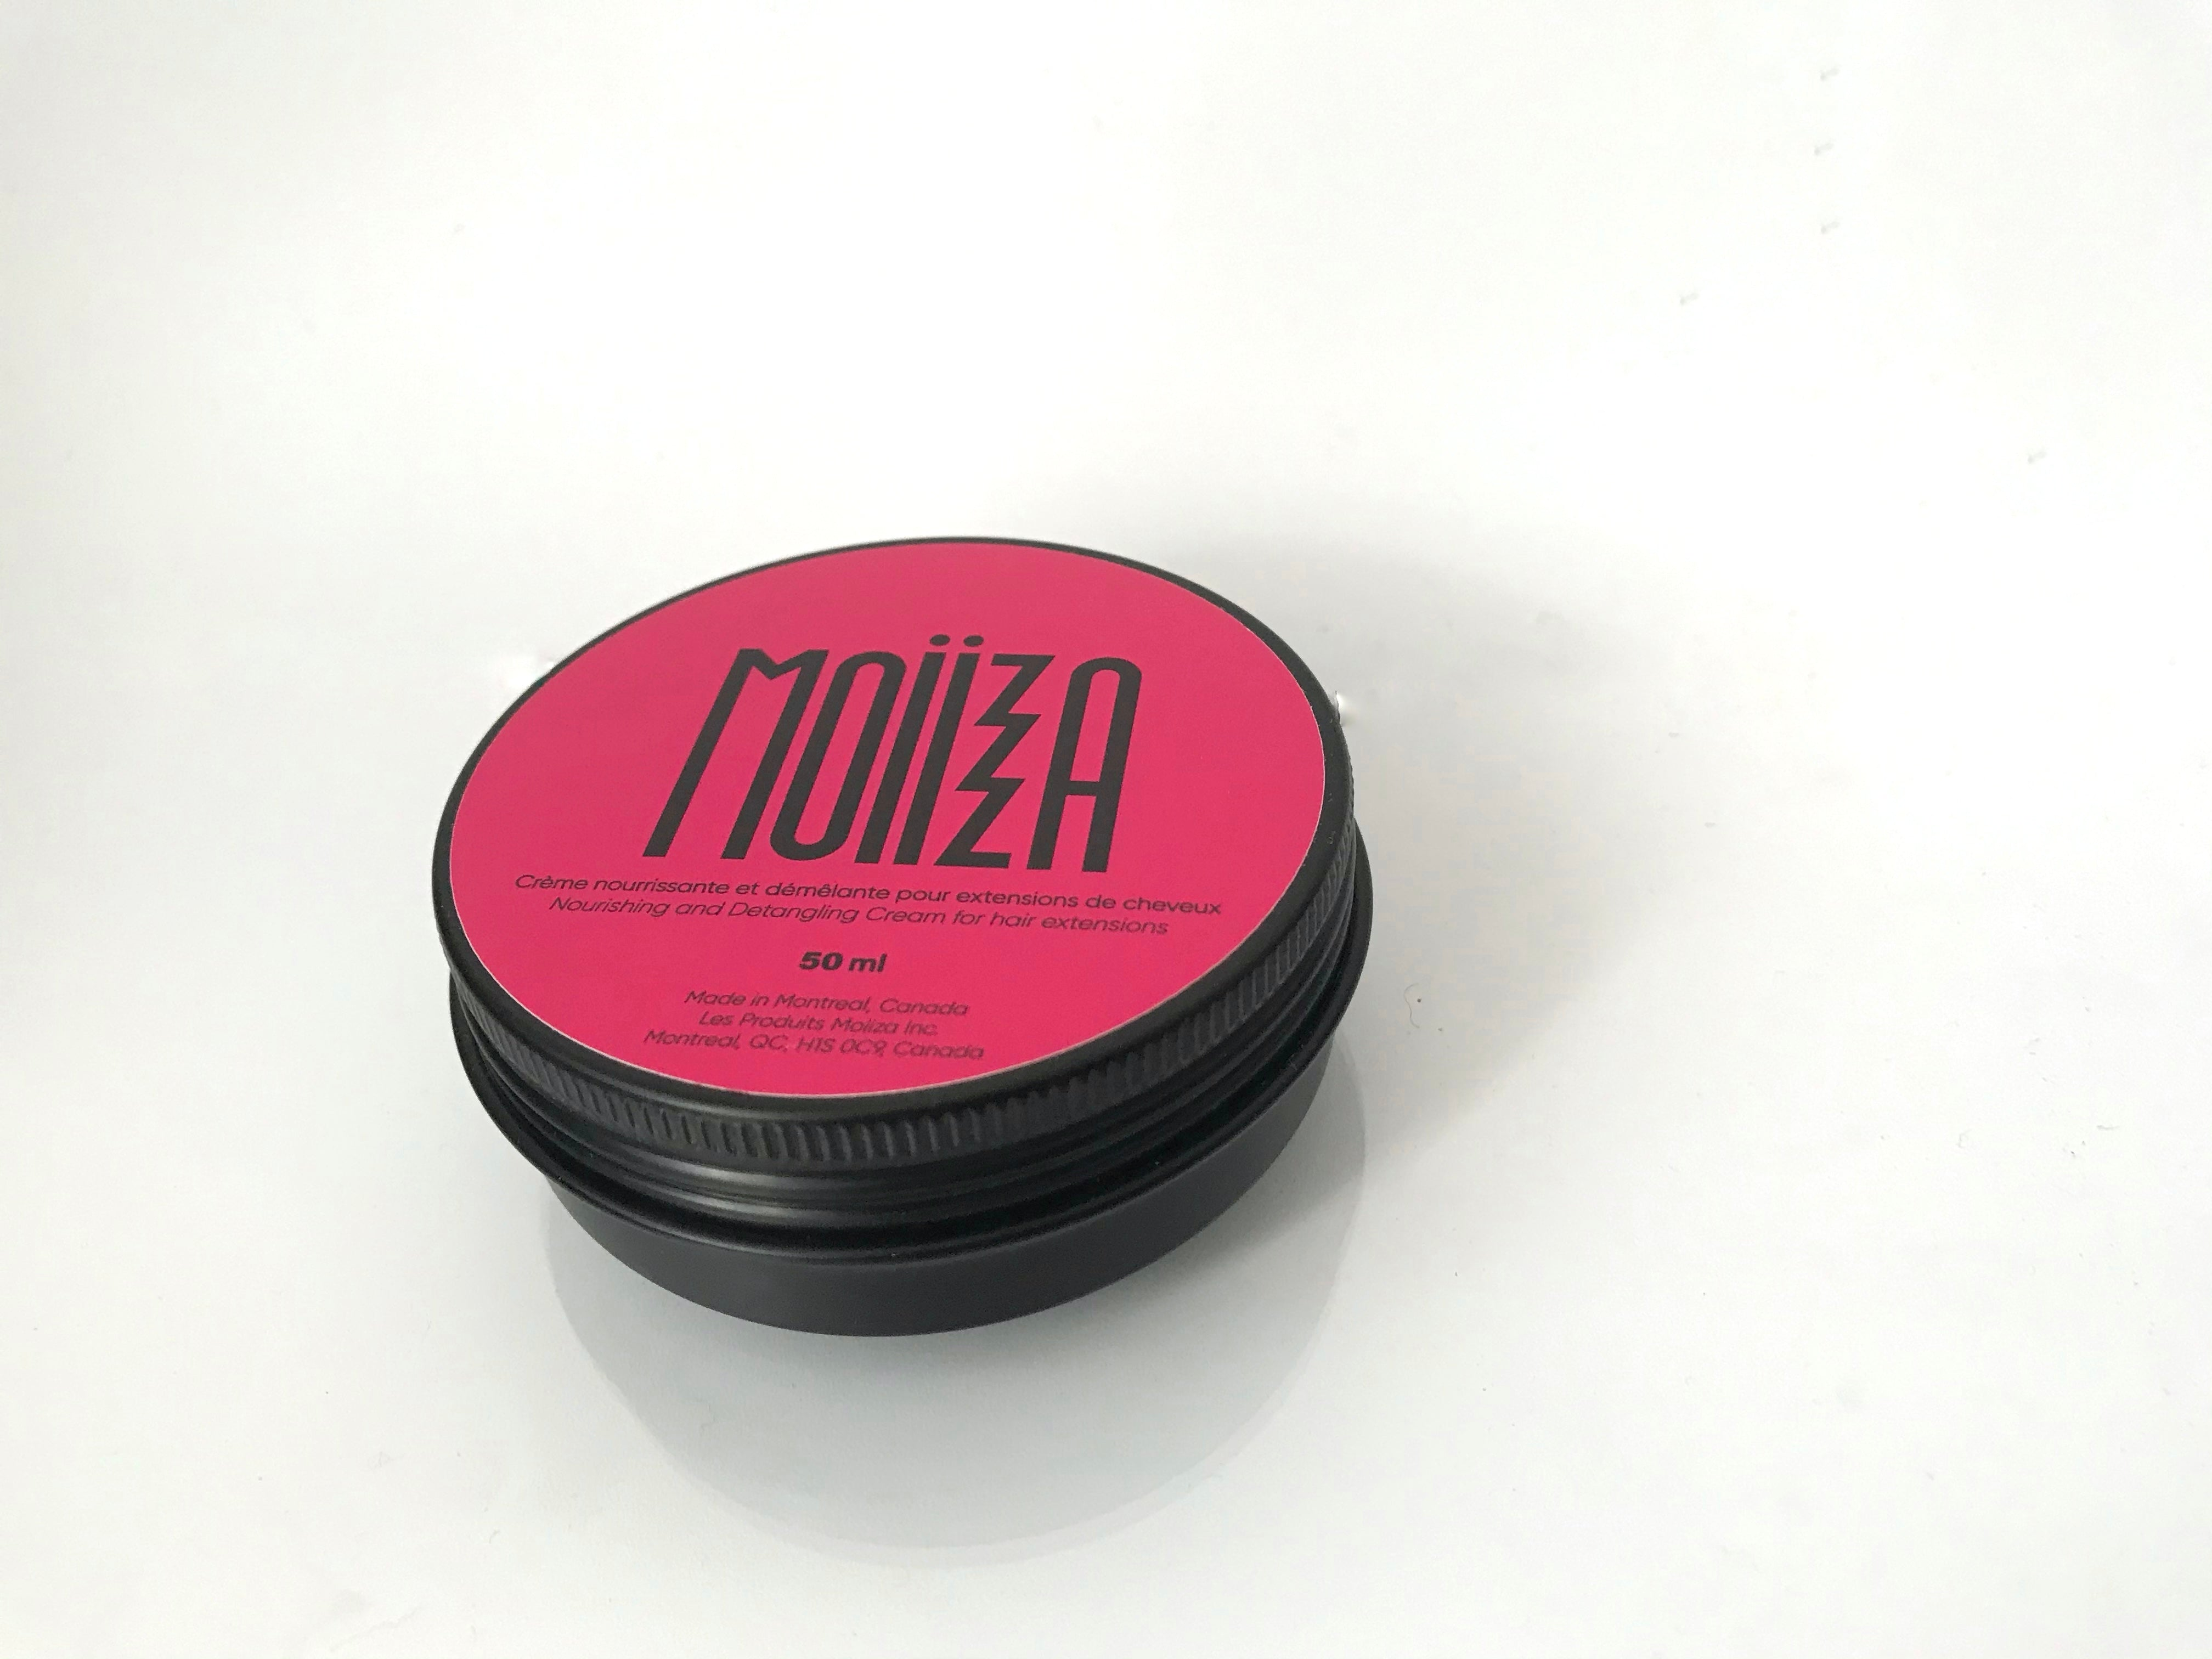 Moiiza 2oz - Hair Moisture Leave-In Treatment